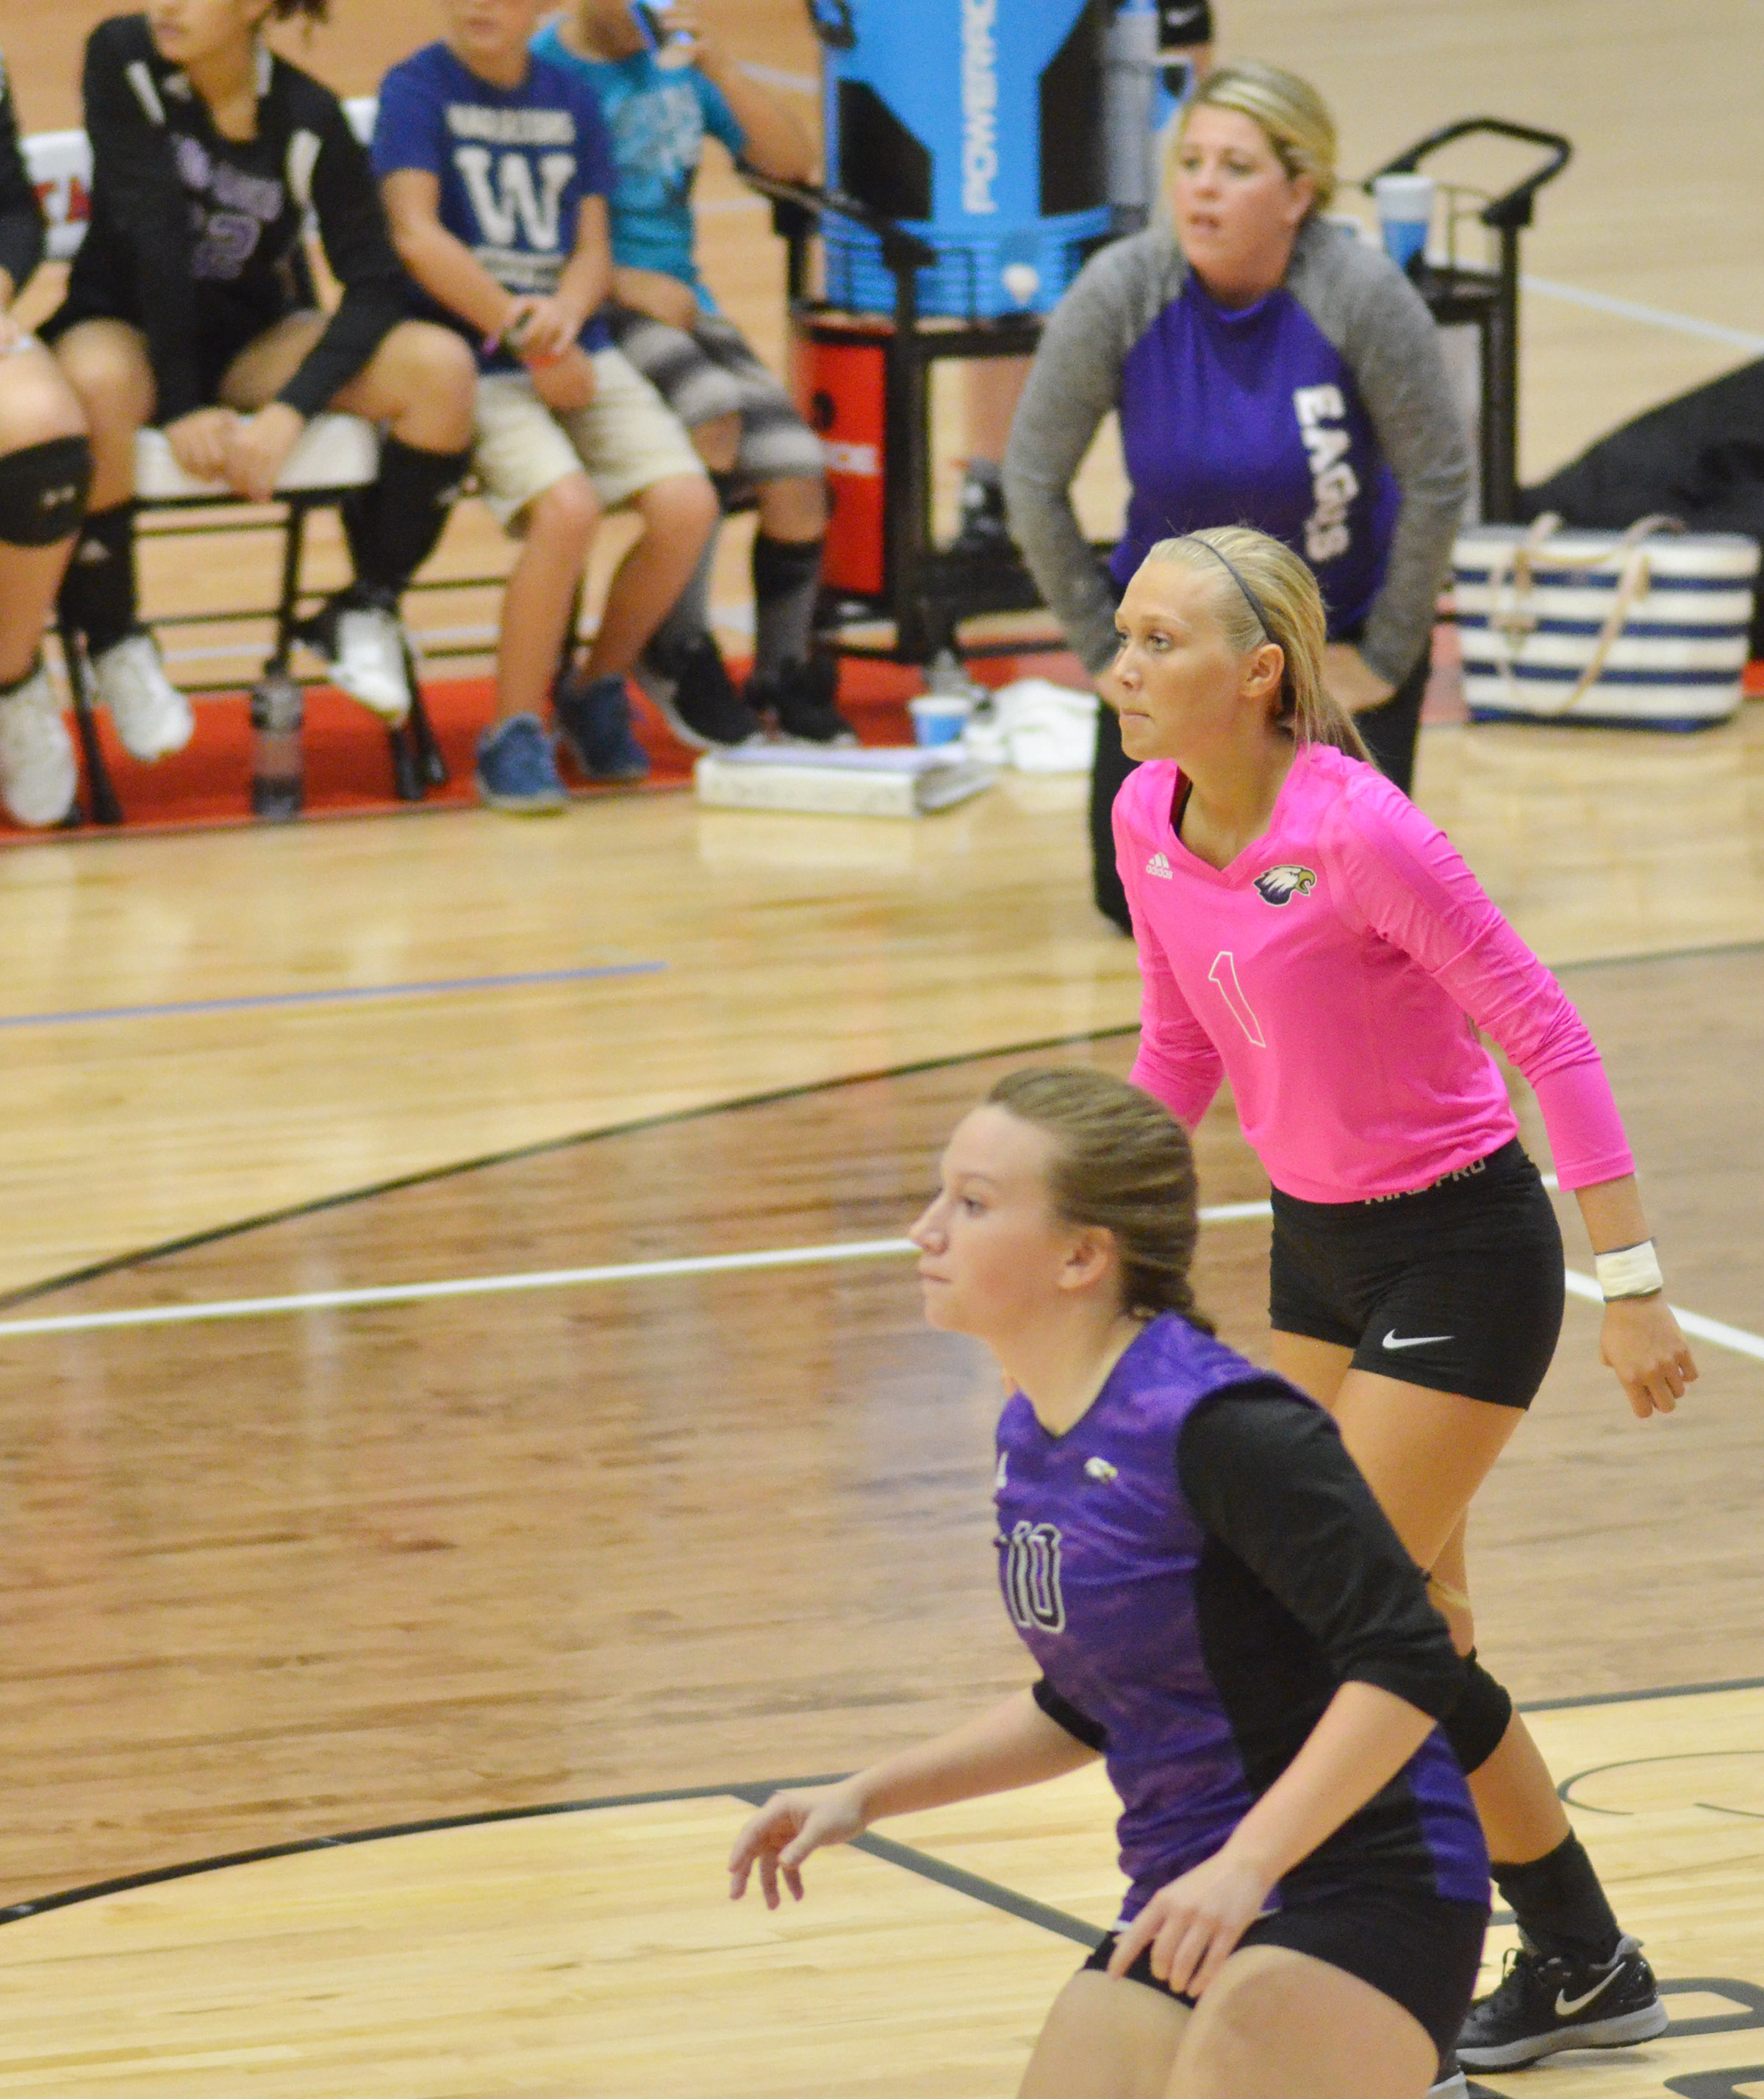 CHS senior Madison Dial, in front, and junior Tatem Wiseman, the libero, get ready for the serve.